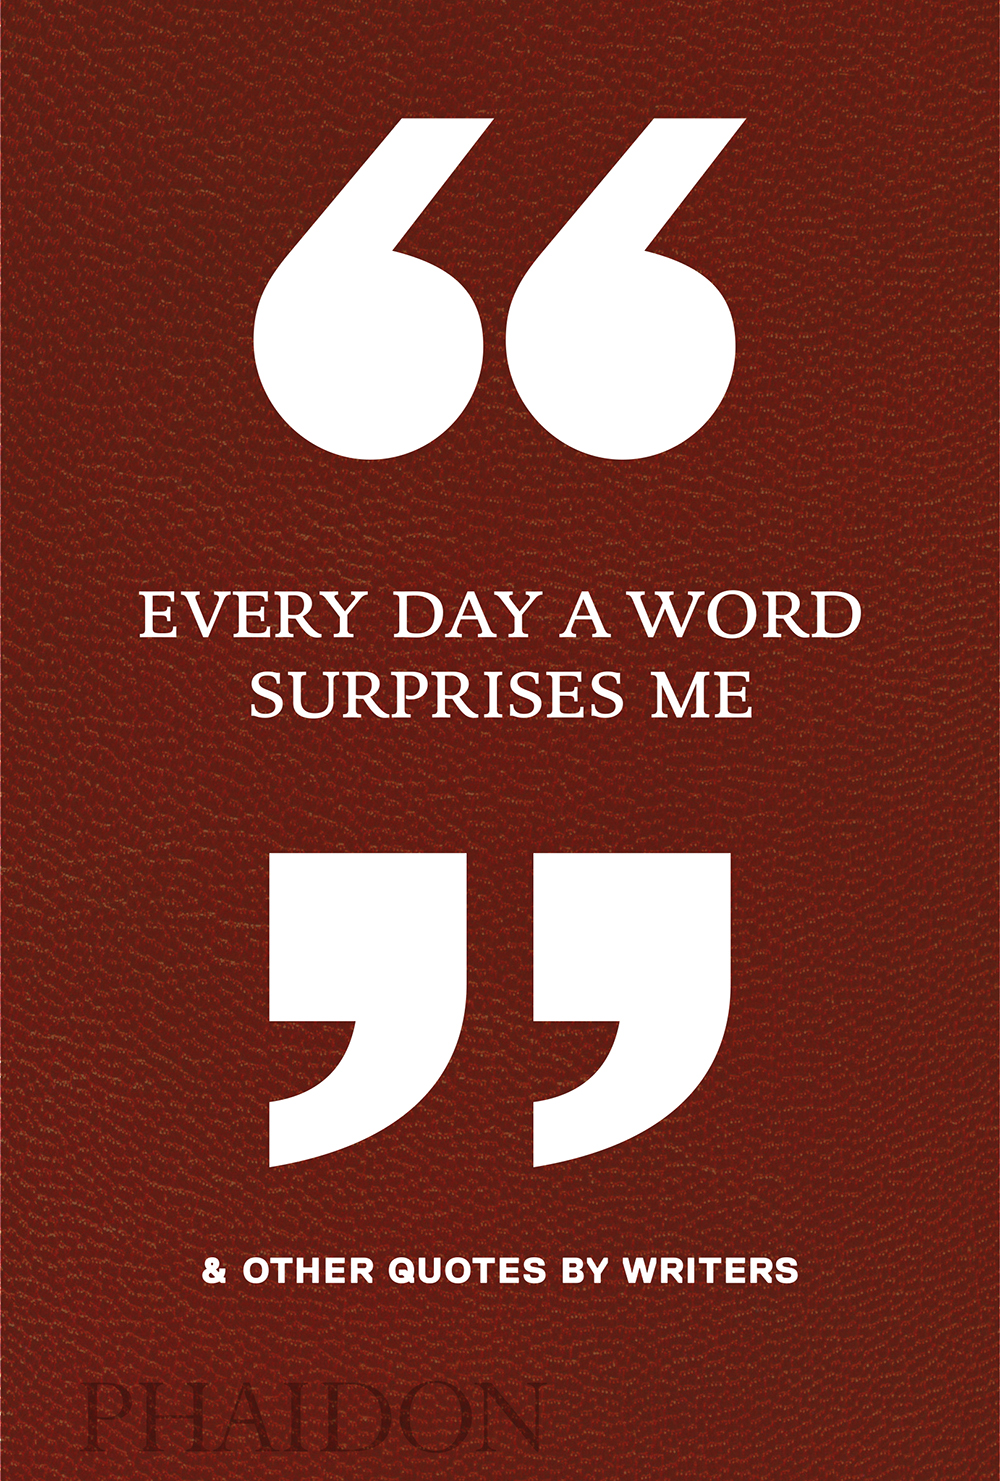 Every Day A Word Surprises Me 2D